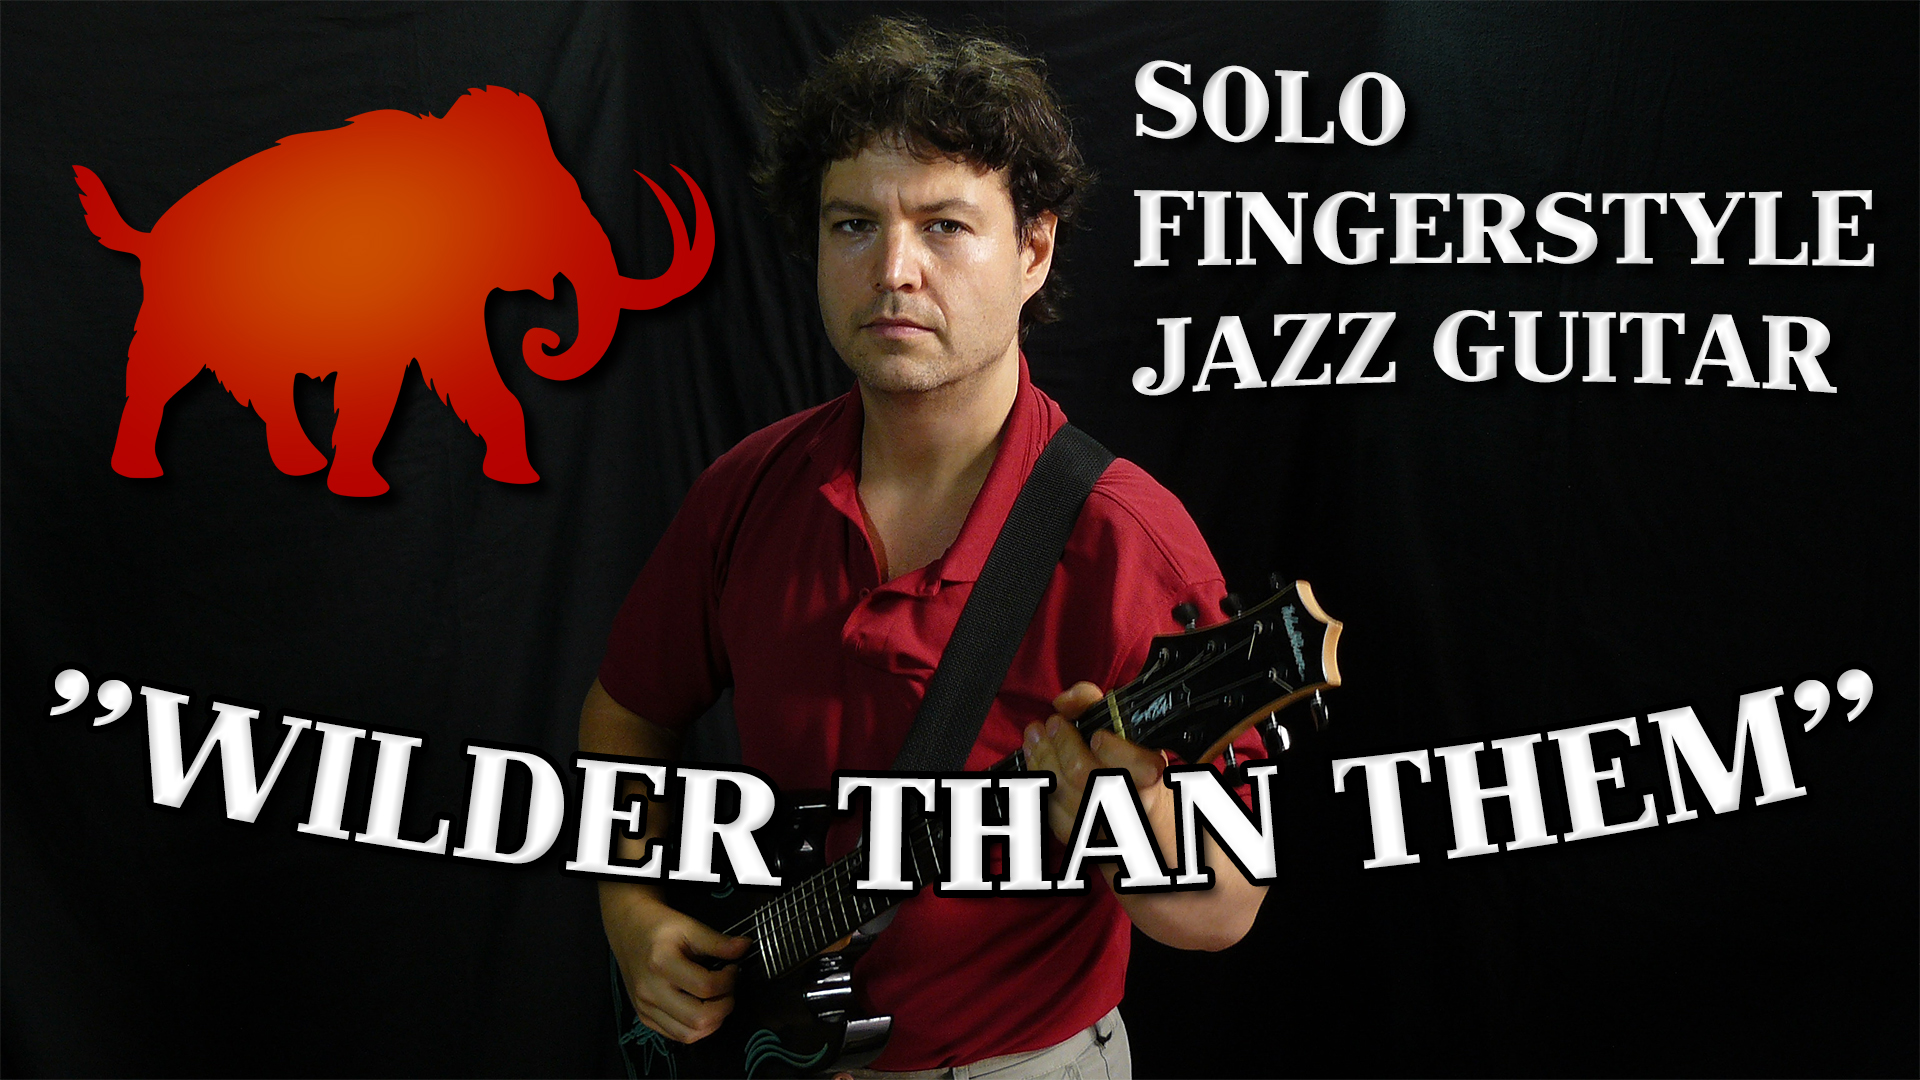 solo fingerstyle jazz guitar - wilder than them